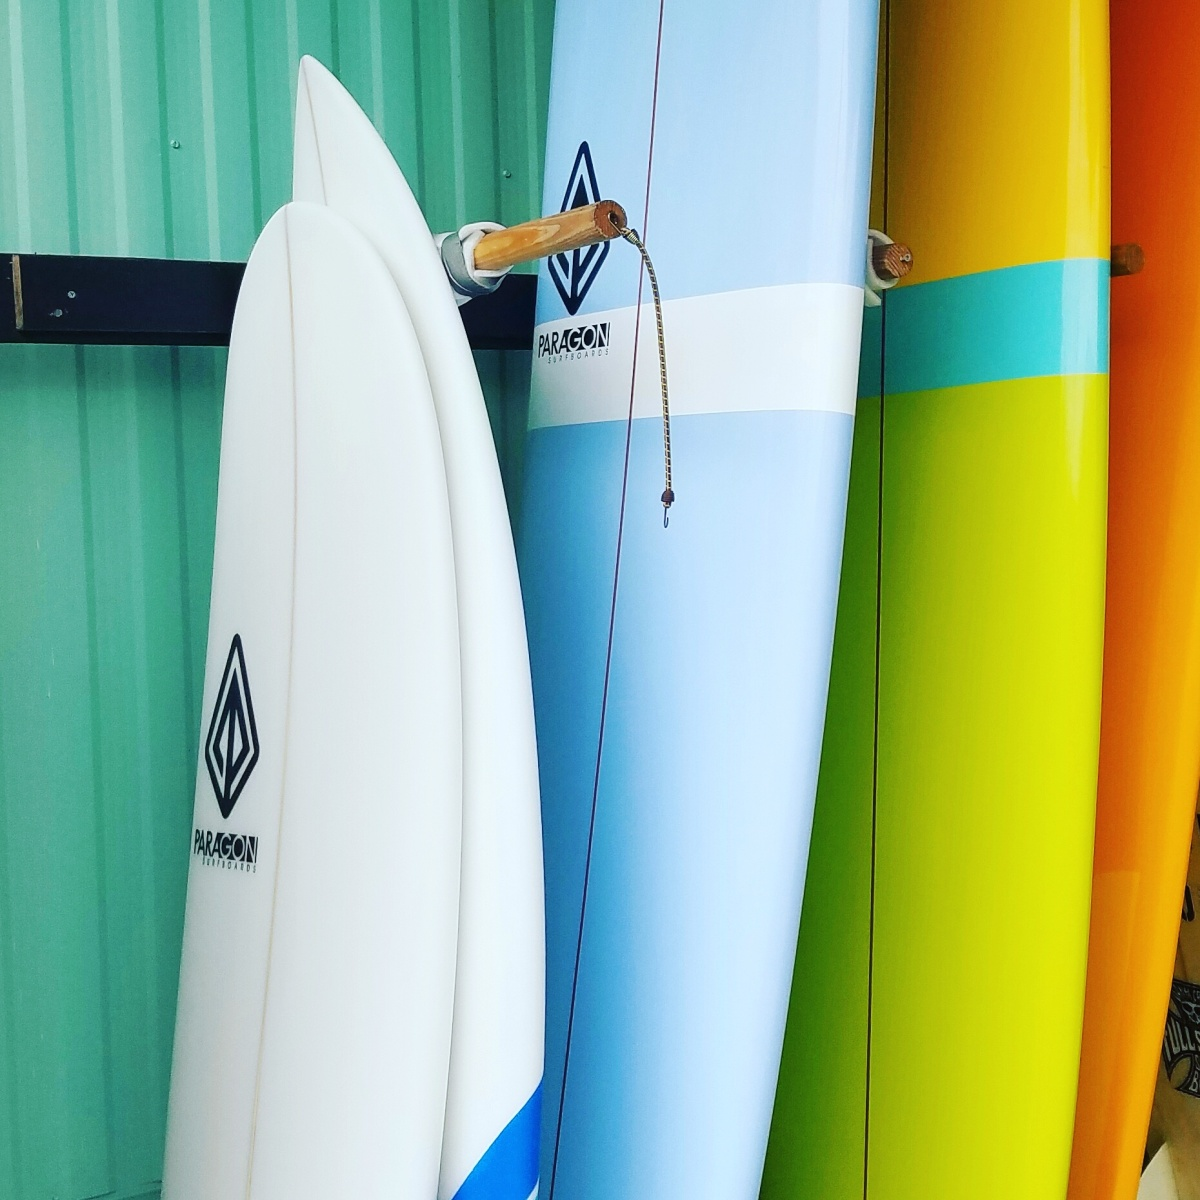 Paragon Surfboards: The Mini-Log and RetroNoserider